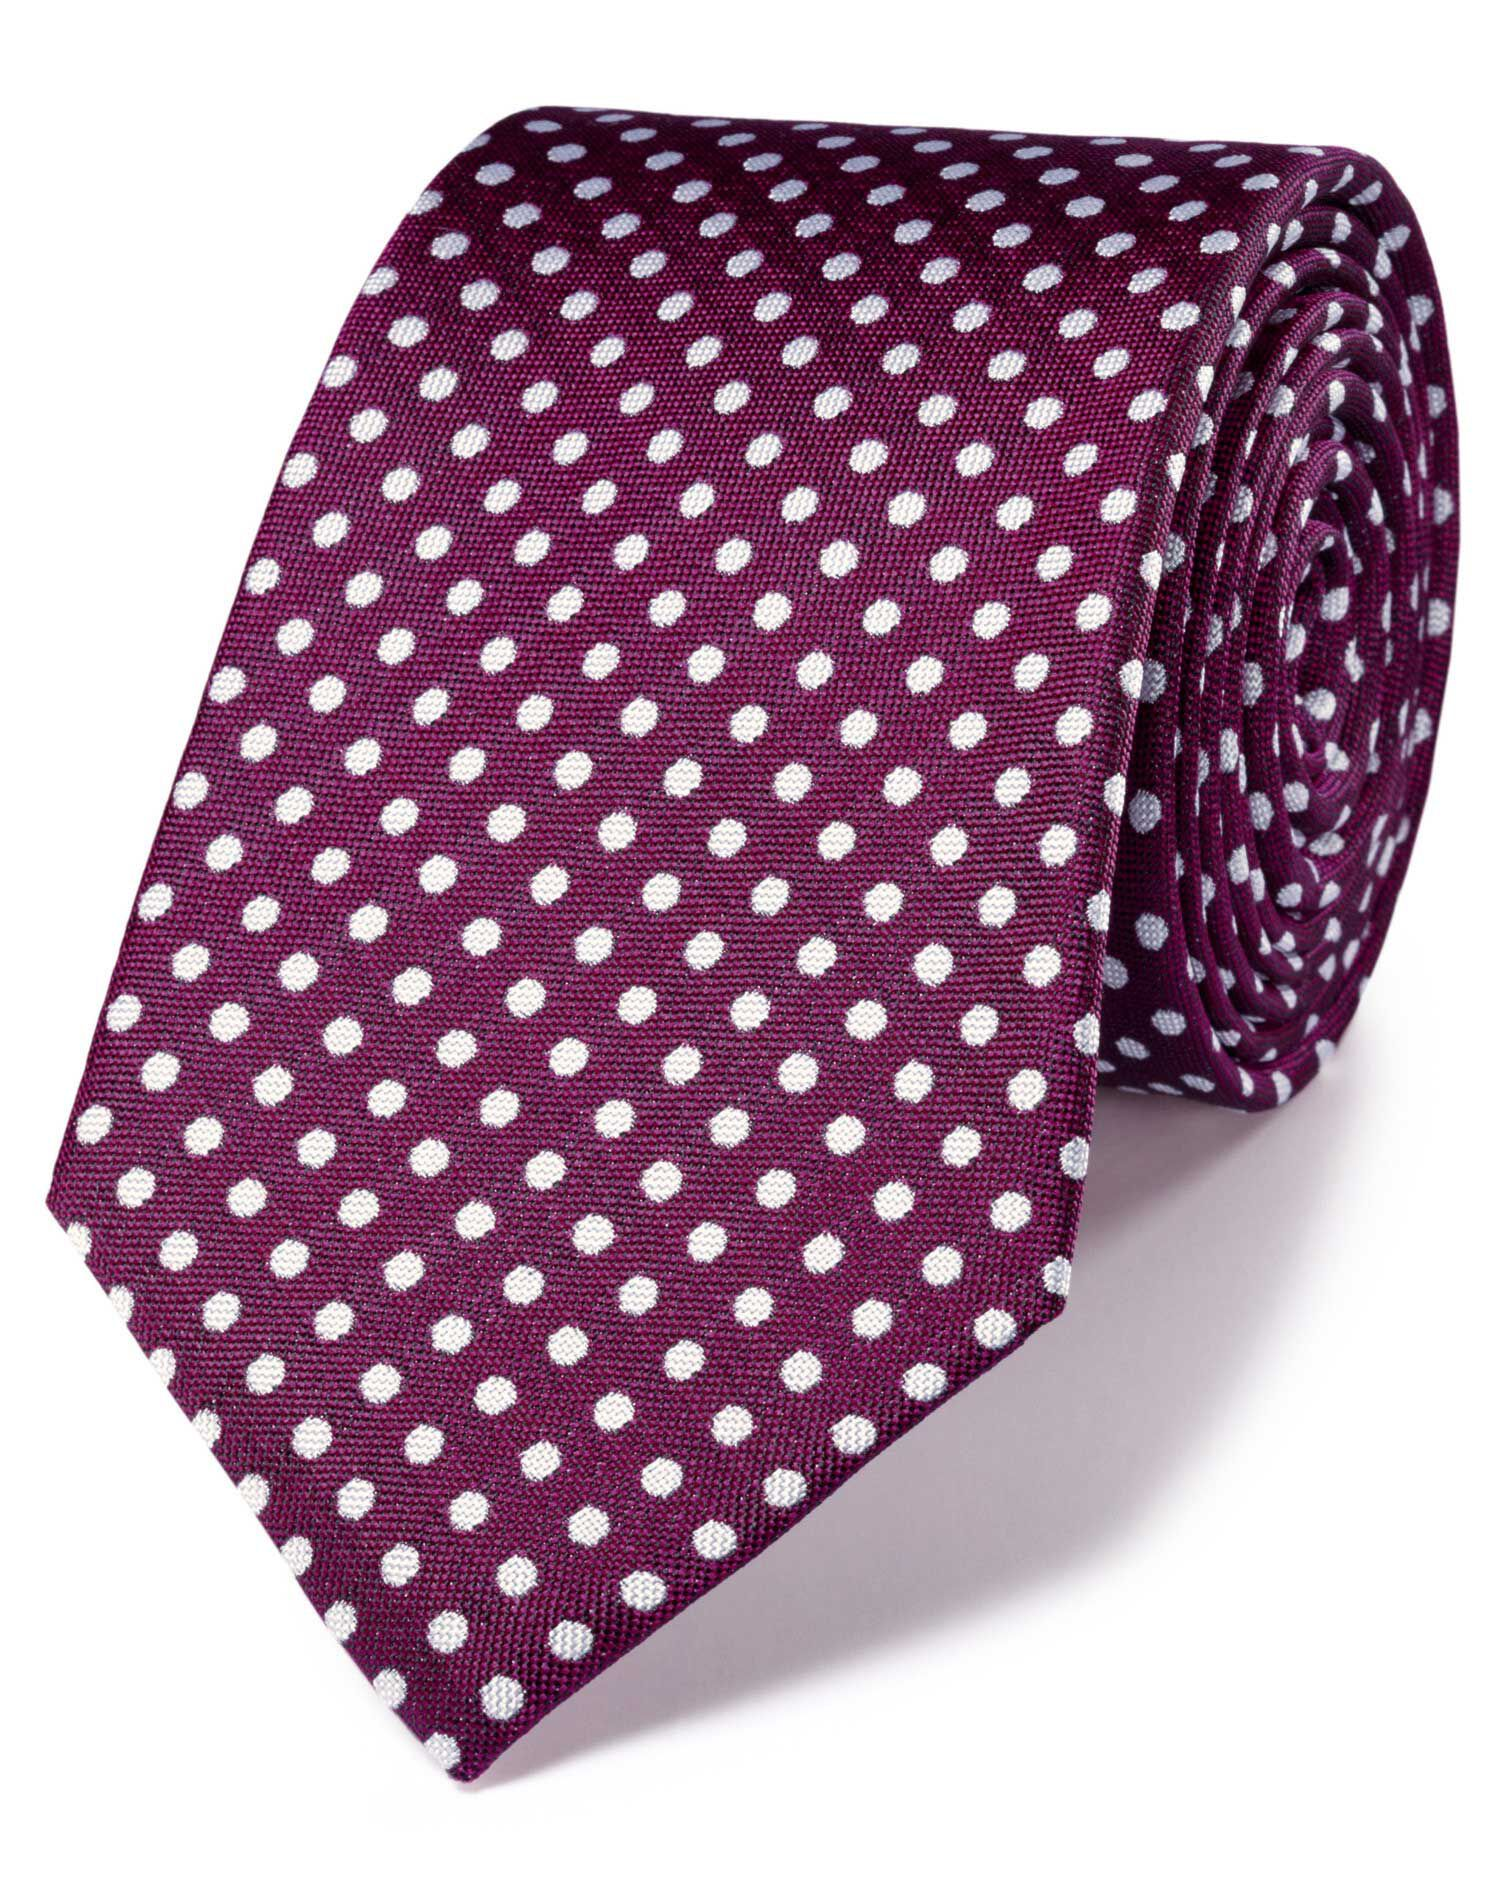 Magenta and White Silk Classic Oxford Spot Tie Size OSFA by Charles Tyrwhitt